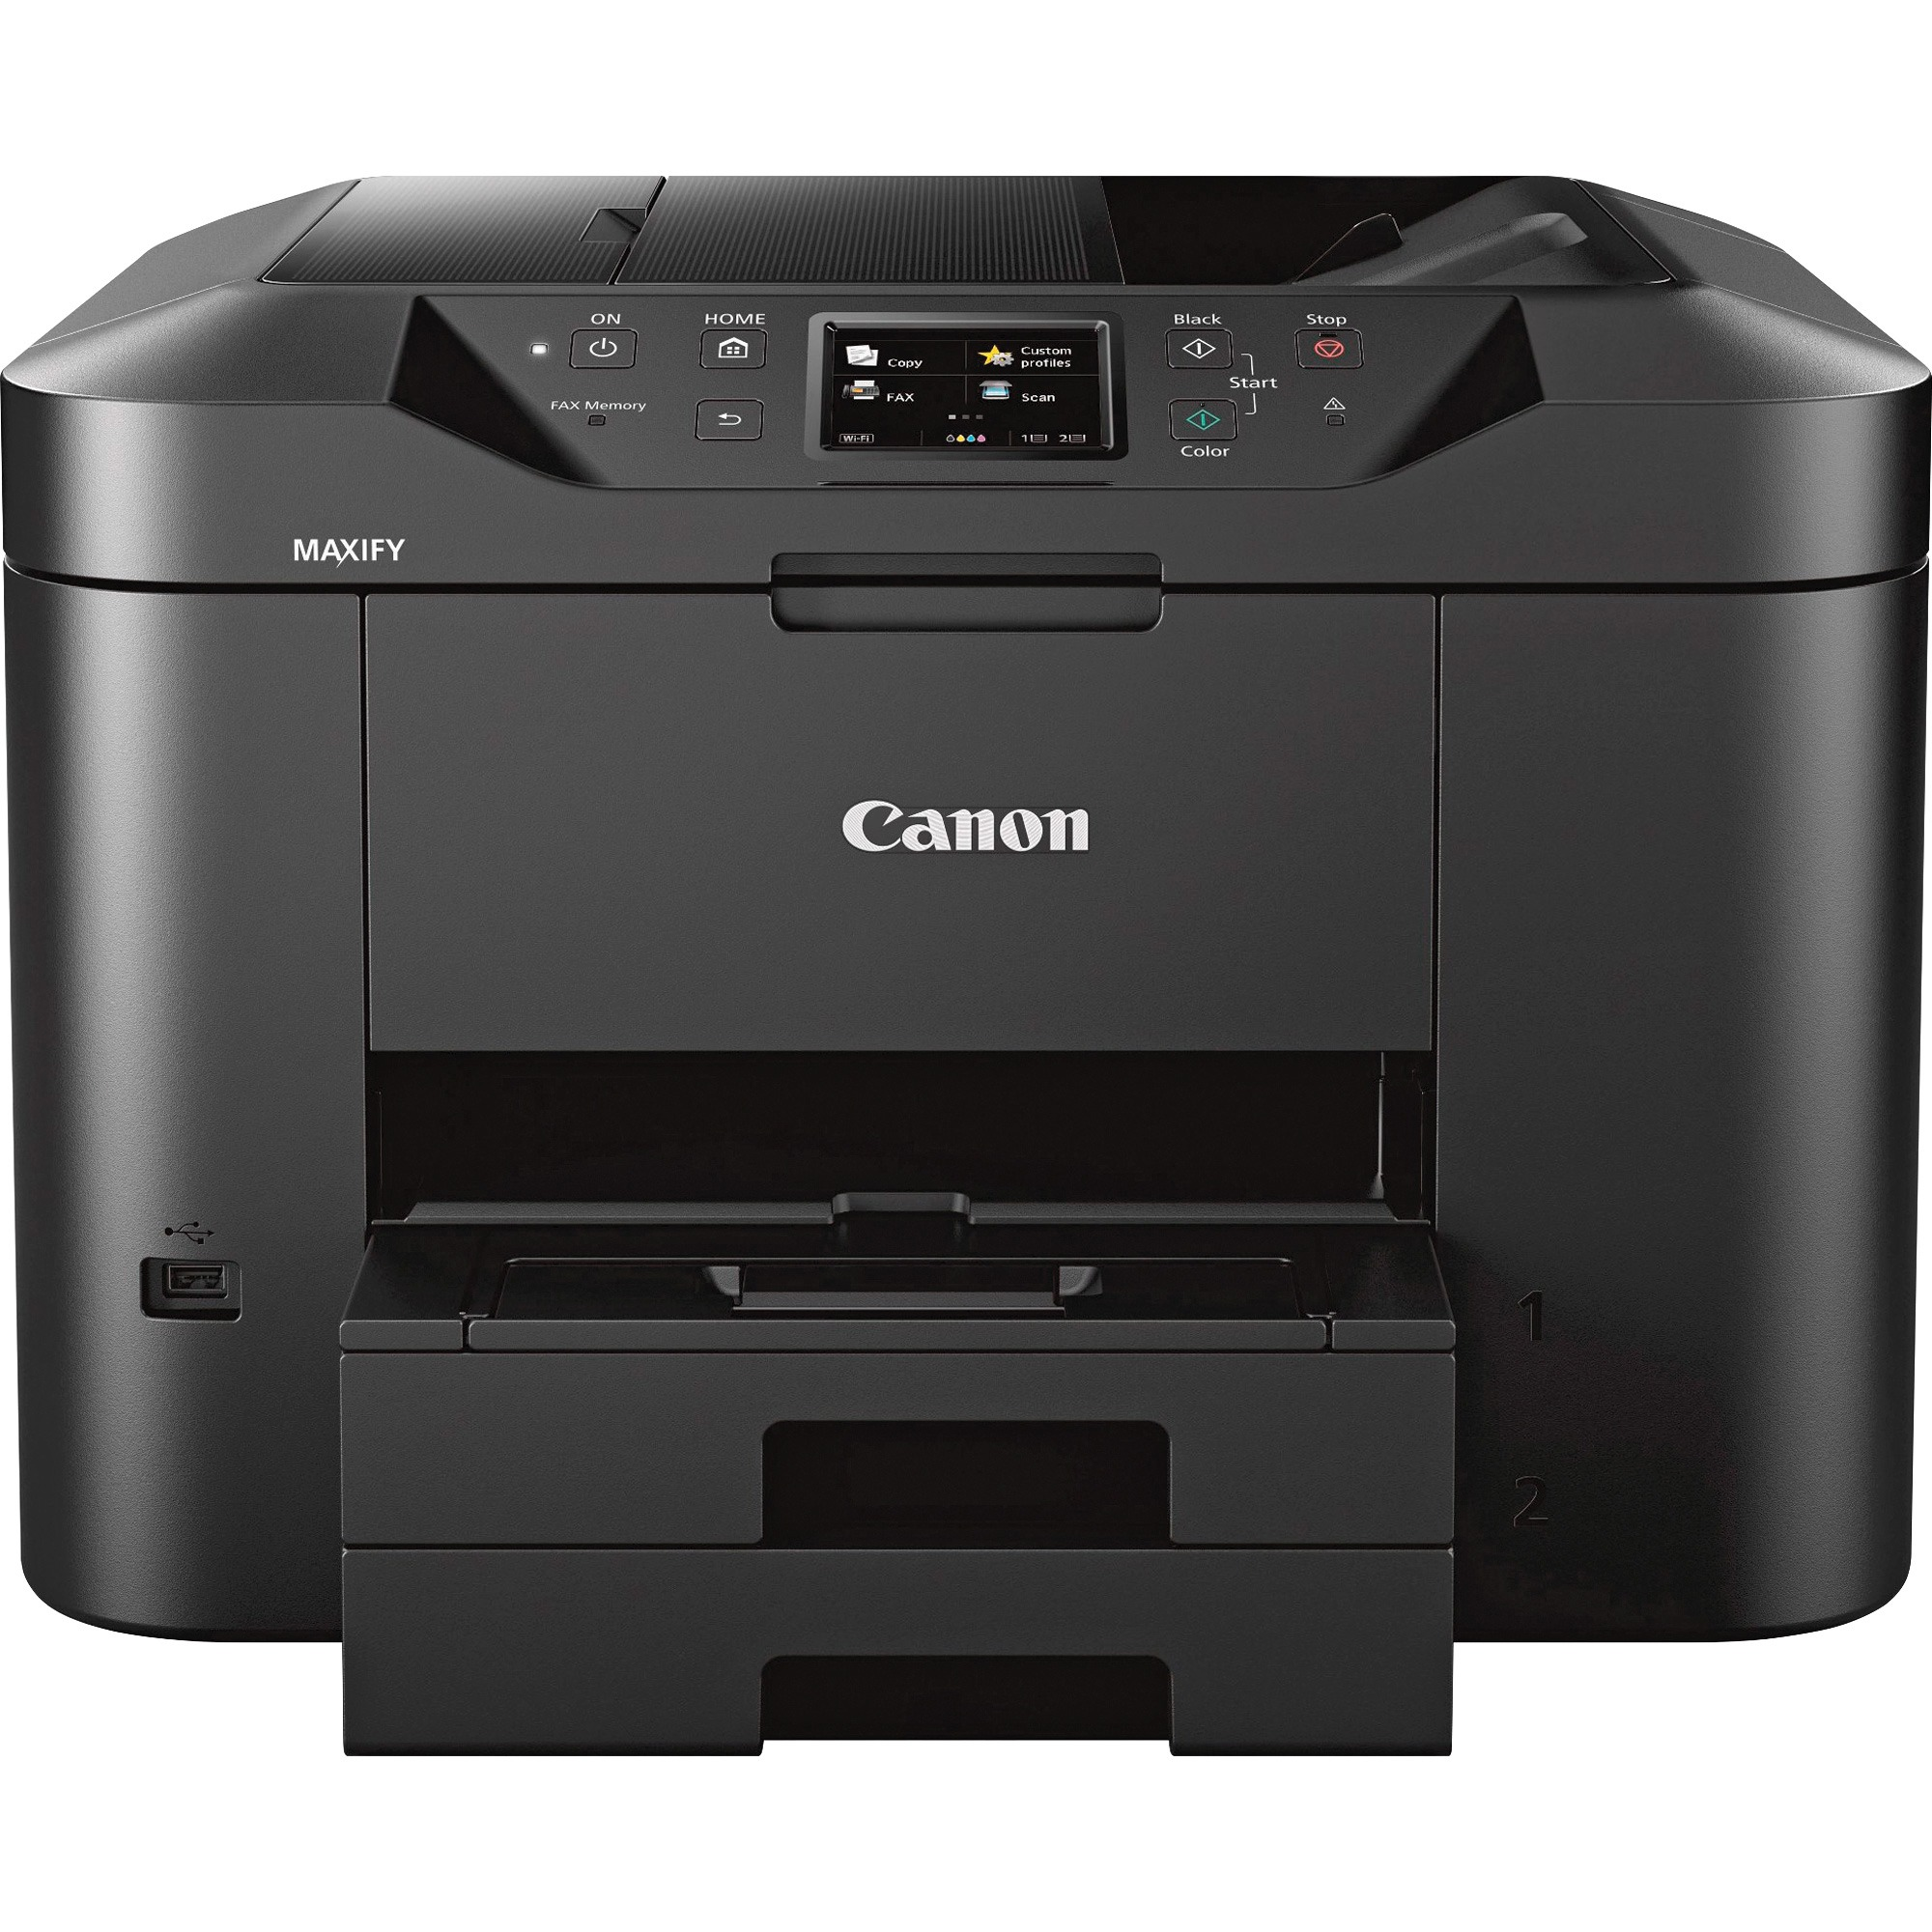 Canon MAXIFY MB2720 Inkjet Multifunction Printer - Color - Plain Paper Print - Desktop